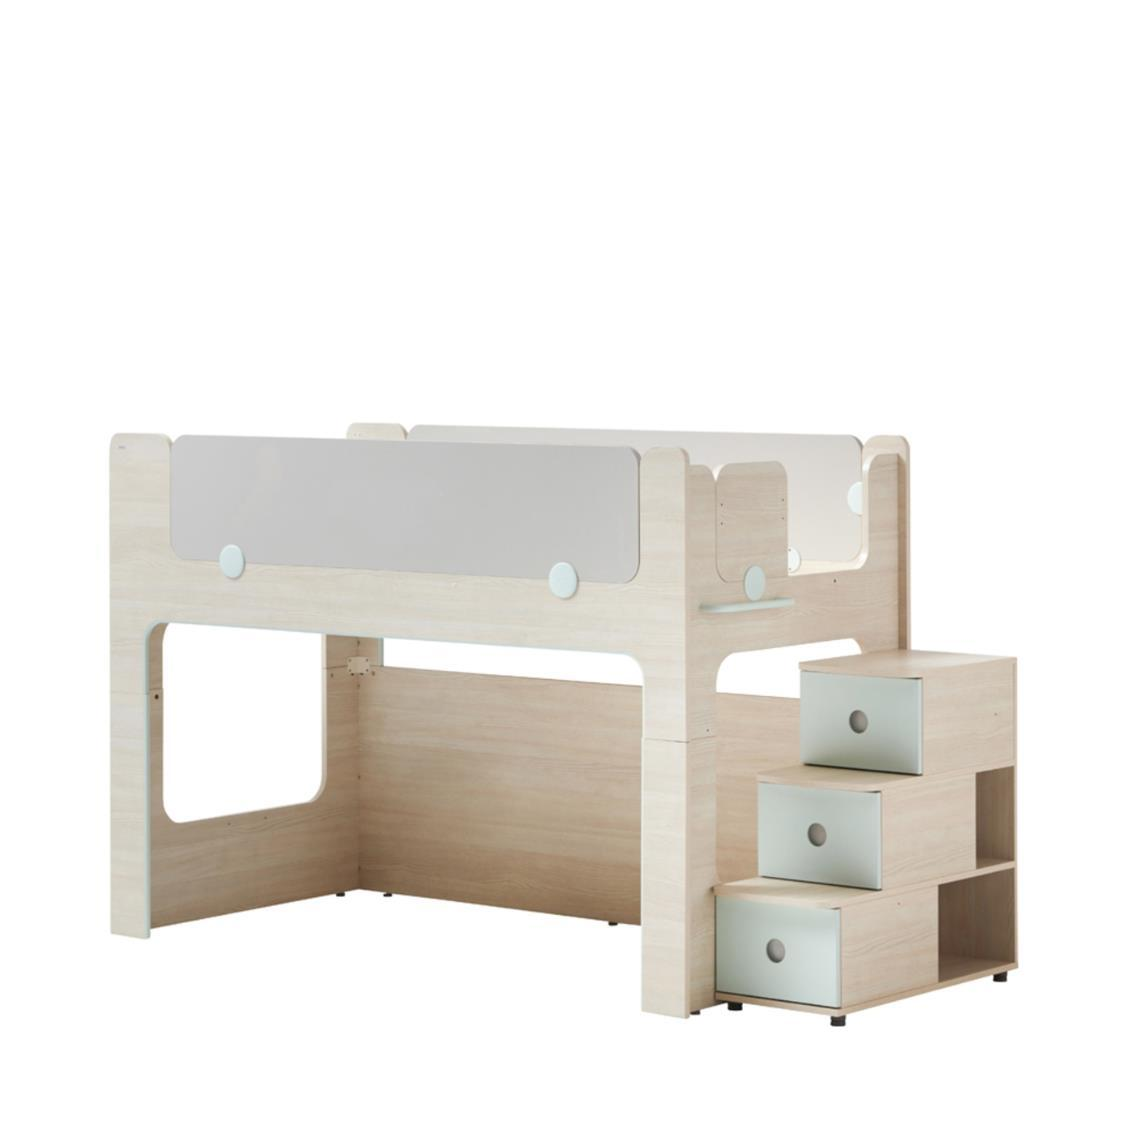 Iloom Cabin Bunk Bed Stairs Cabinet OSLA Olmless Ruster Light Aqua